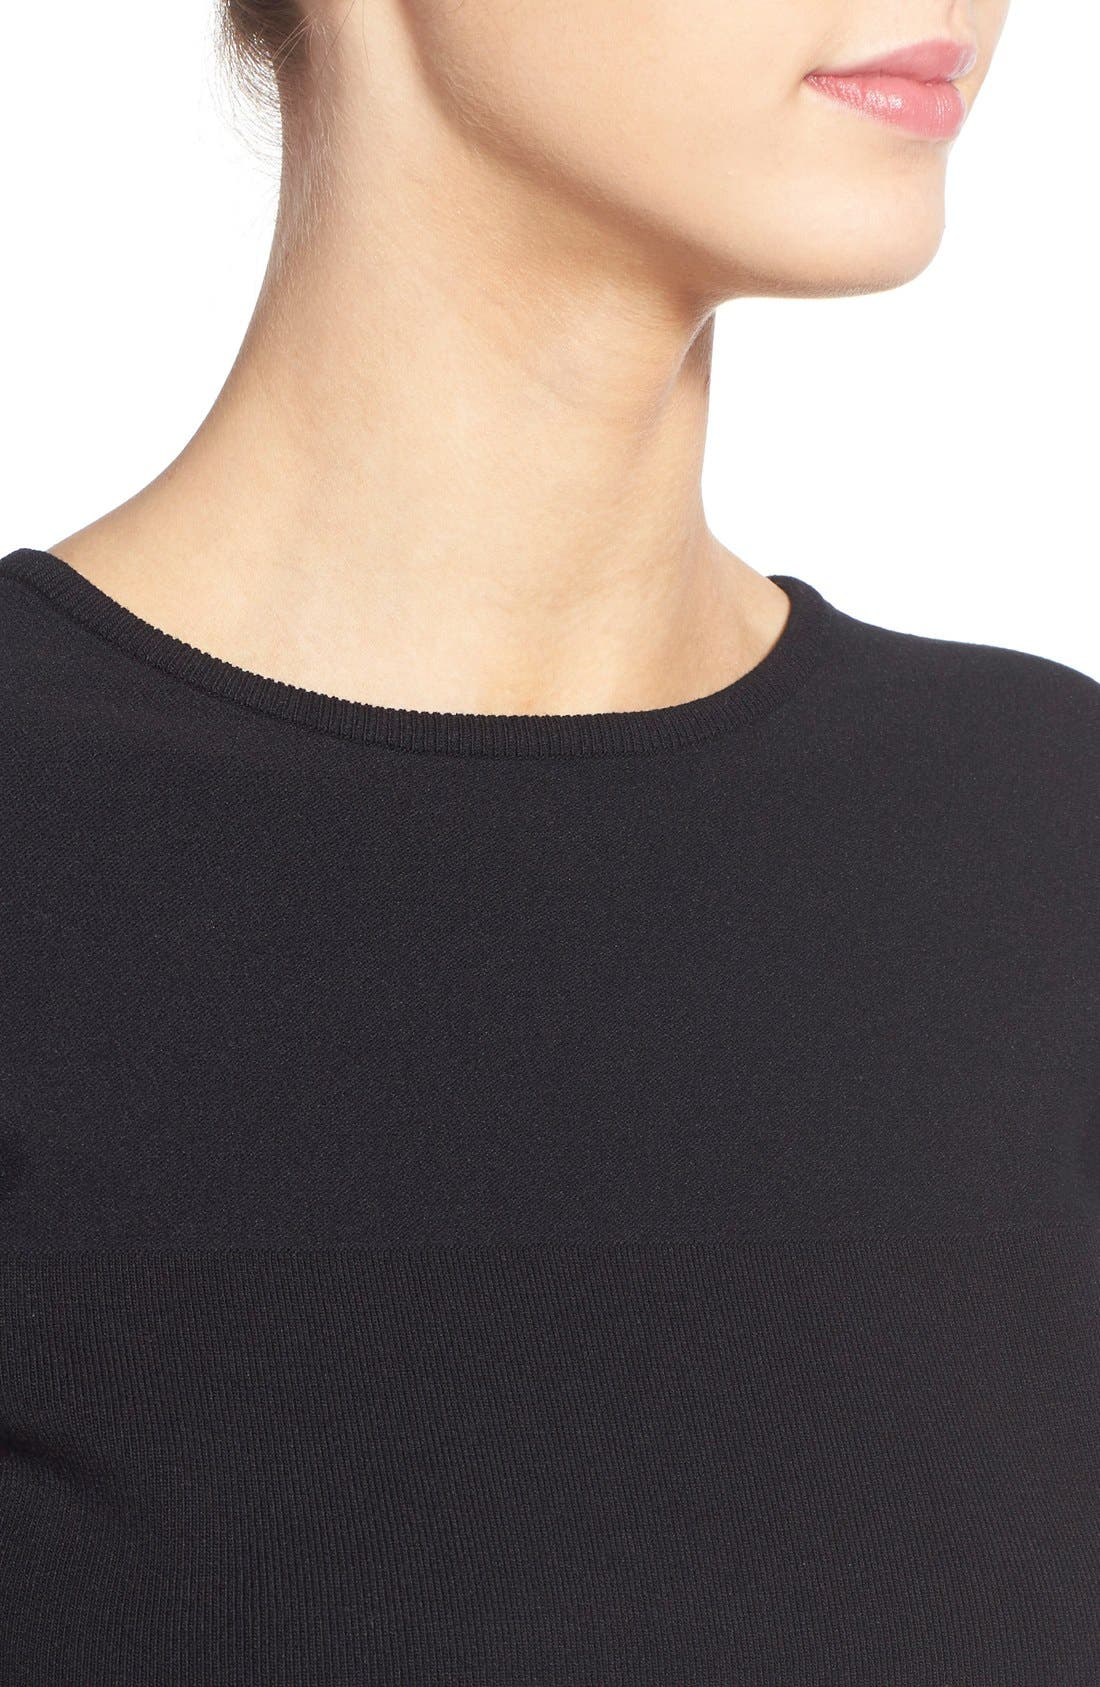 Alternate Image 5  - KENDALL + KYLIE Crop Knit Sweater